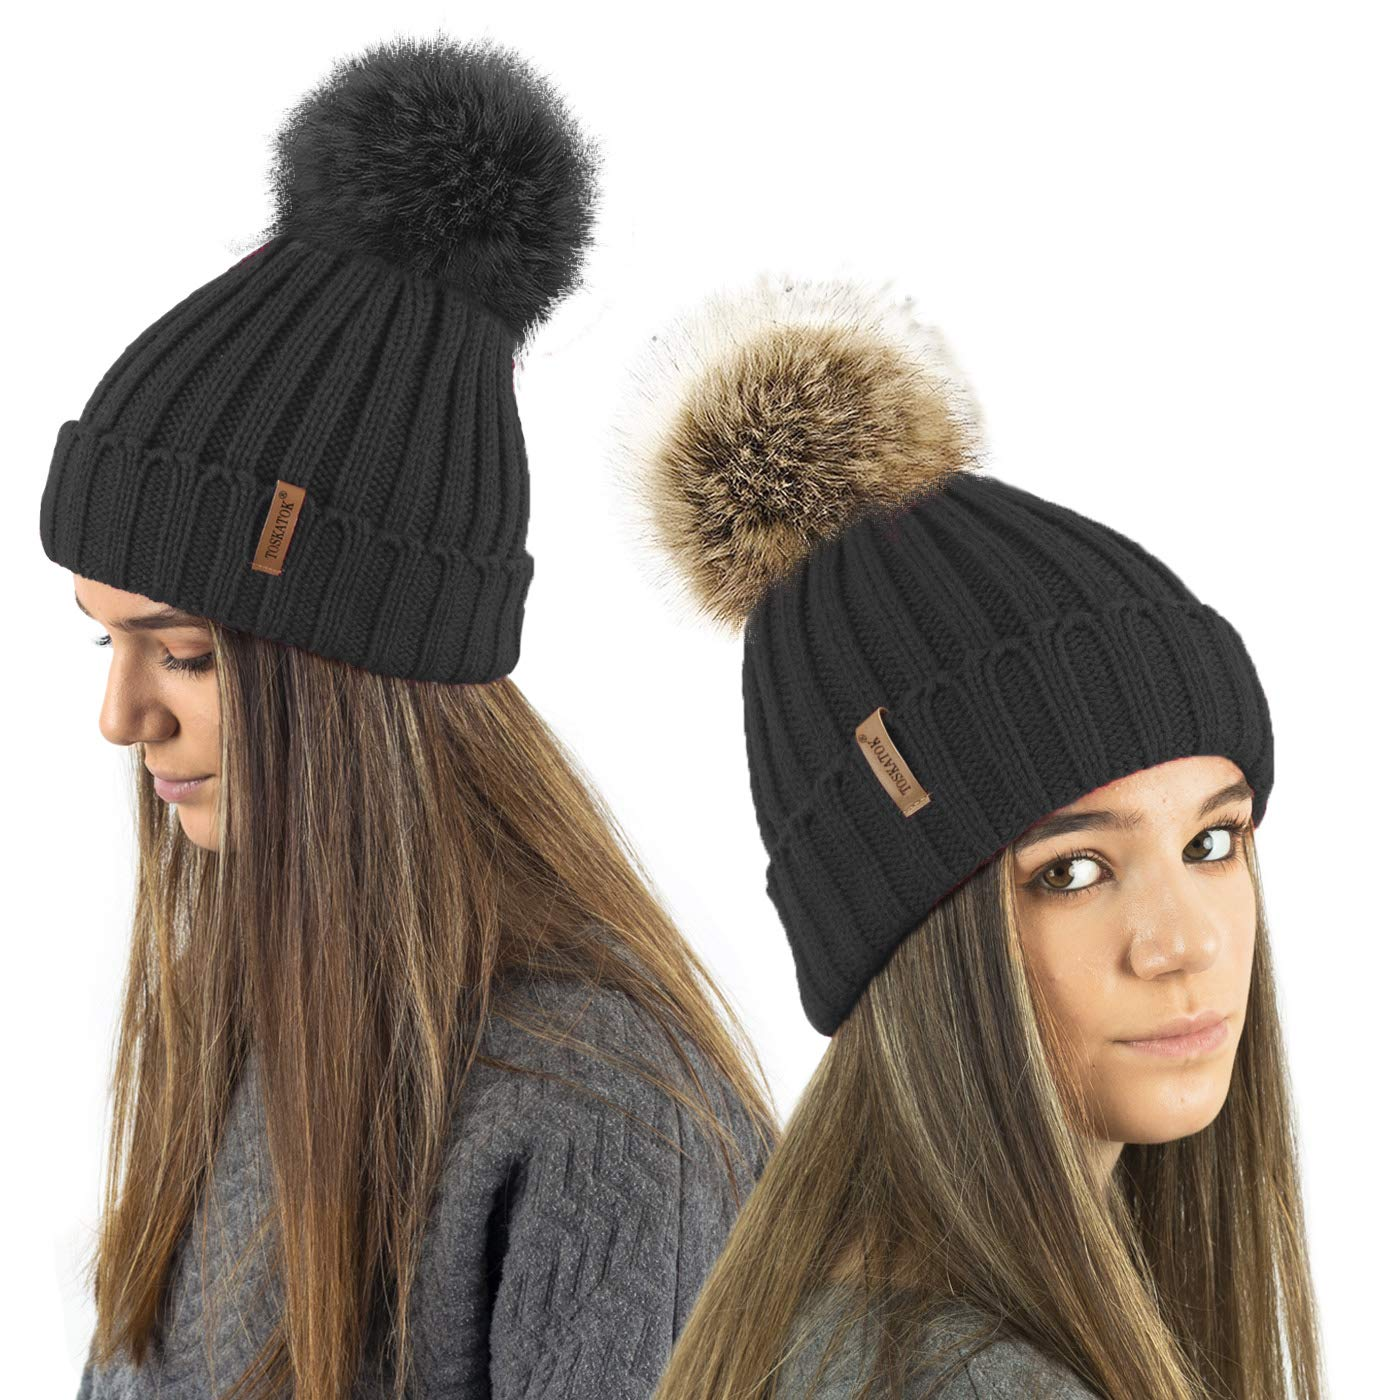 af2e5bb6b15 TOSKATOK® Ladies Girls Chunky 3 in 1 Rib Beanie Hat with 2 Interchangeable  Large Faux Fur Pompoms